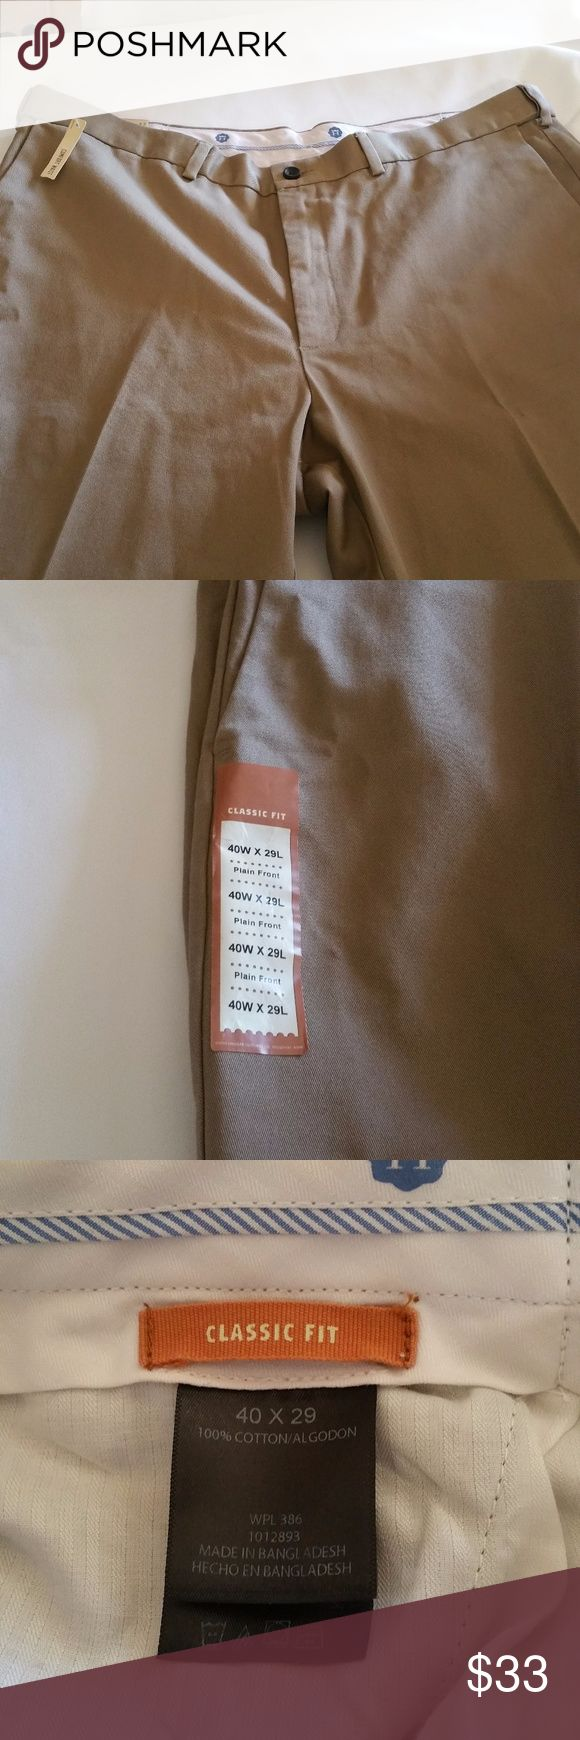 HAGGAR CLOTHING CO. men's STRAIGHT FIT 40WX29L For your consideration:   HAGGAR CLOTHING CO. men's STRAIGHT FIT WORK TO WEEKEND PANT  40W X 29L.   New with tag.  Flat front  Color is Khaki. Haggar Pants Chinos & Khakis